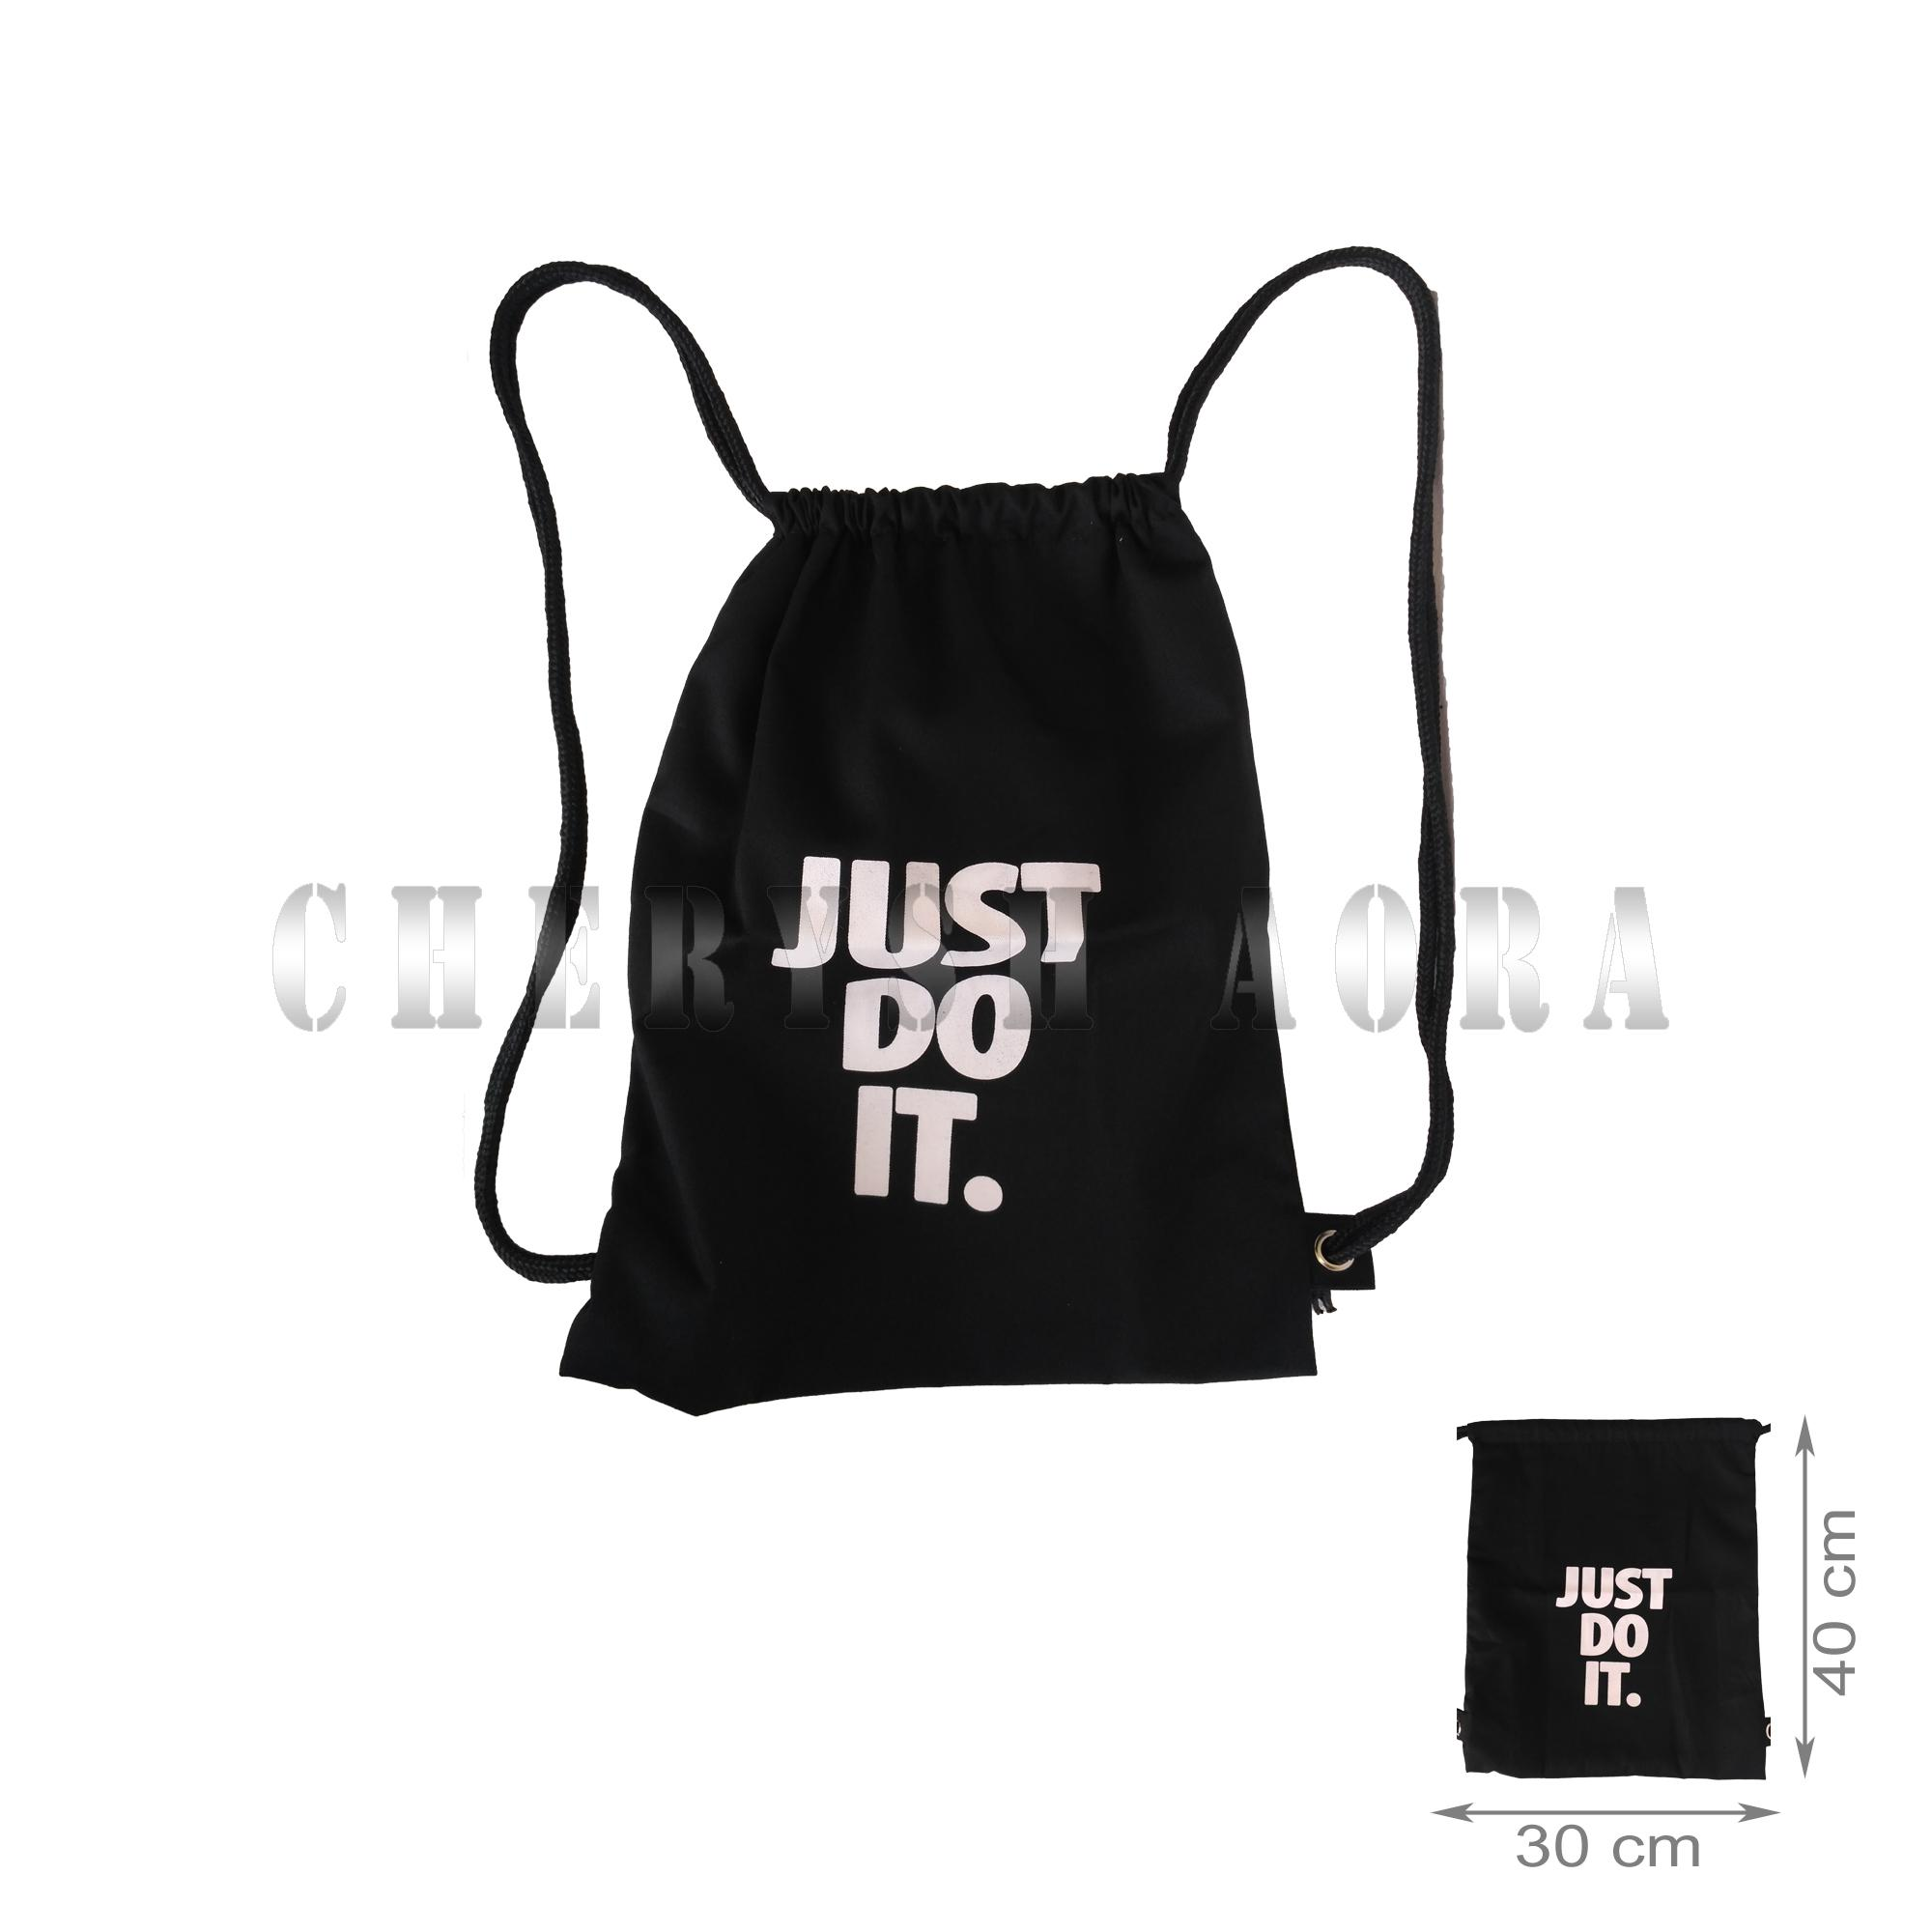 Tas Ransel Stringbag / String Bag / Tas Serut - Just Do It By Cherysh Aora.